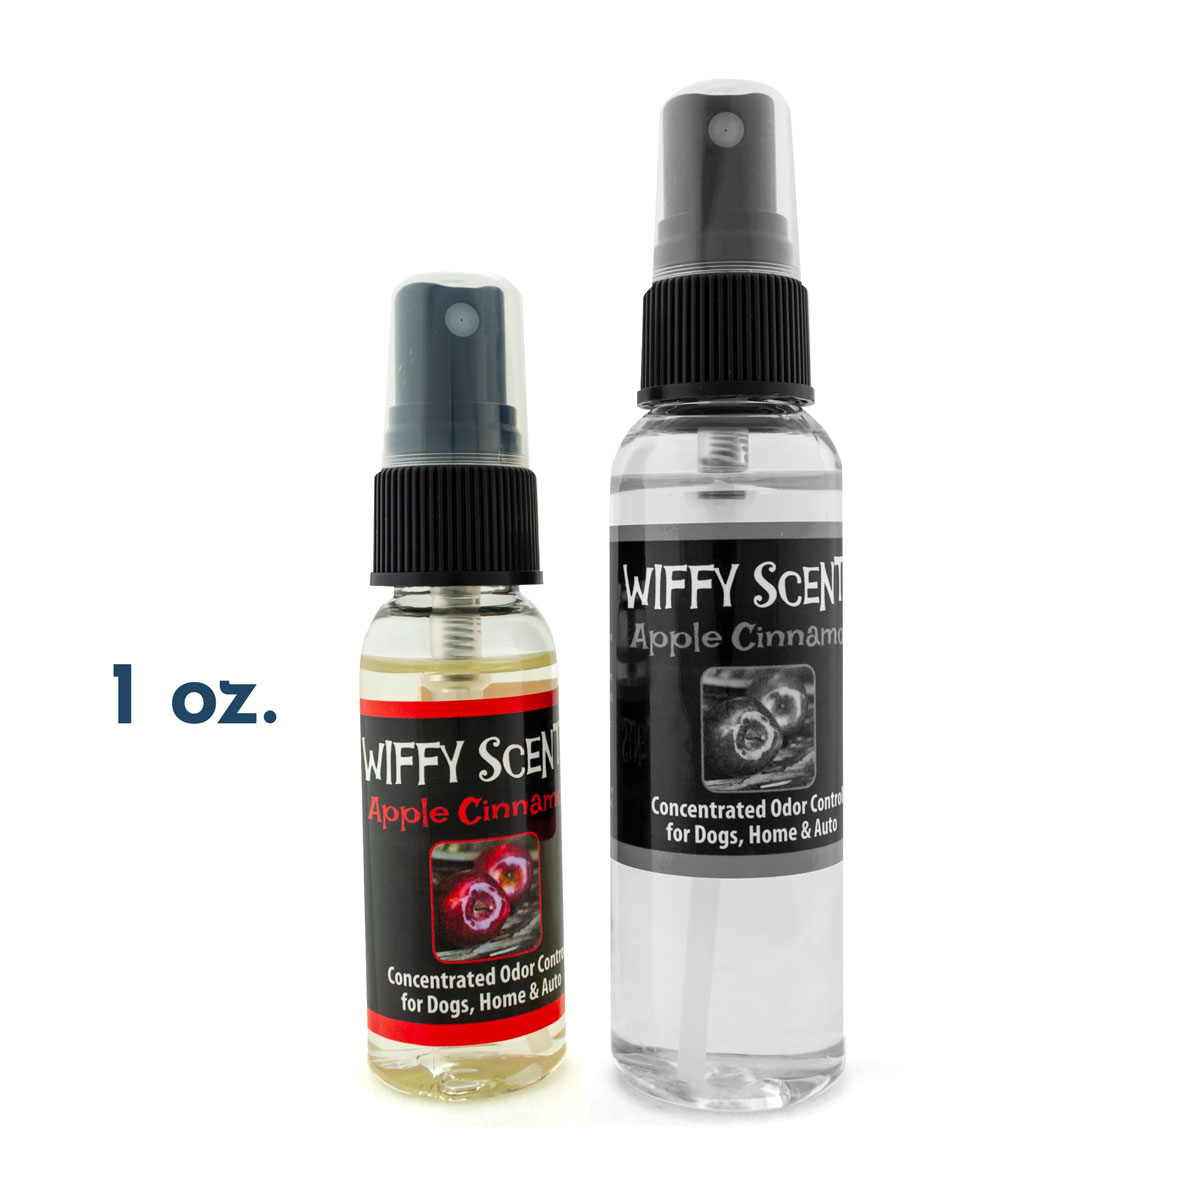 Scented Cologne Spray 1oz Fresh Baked Bread